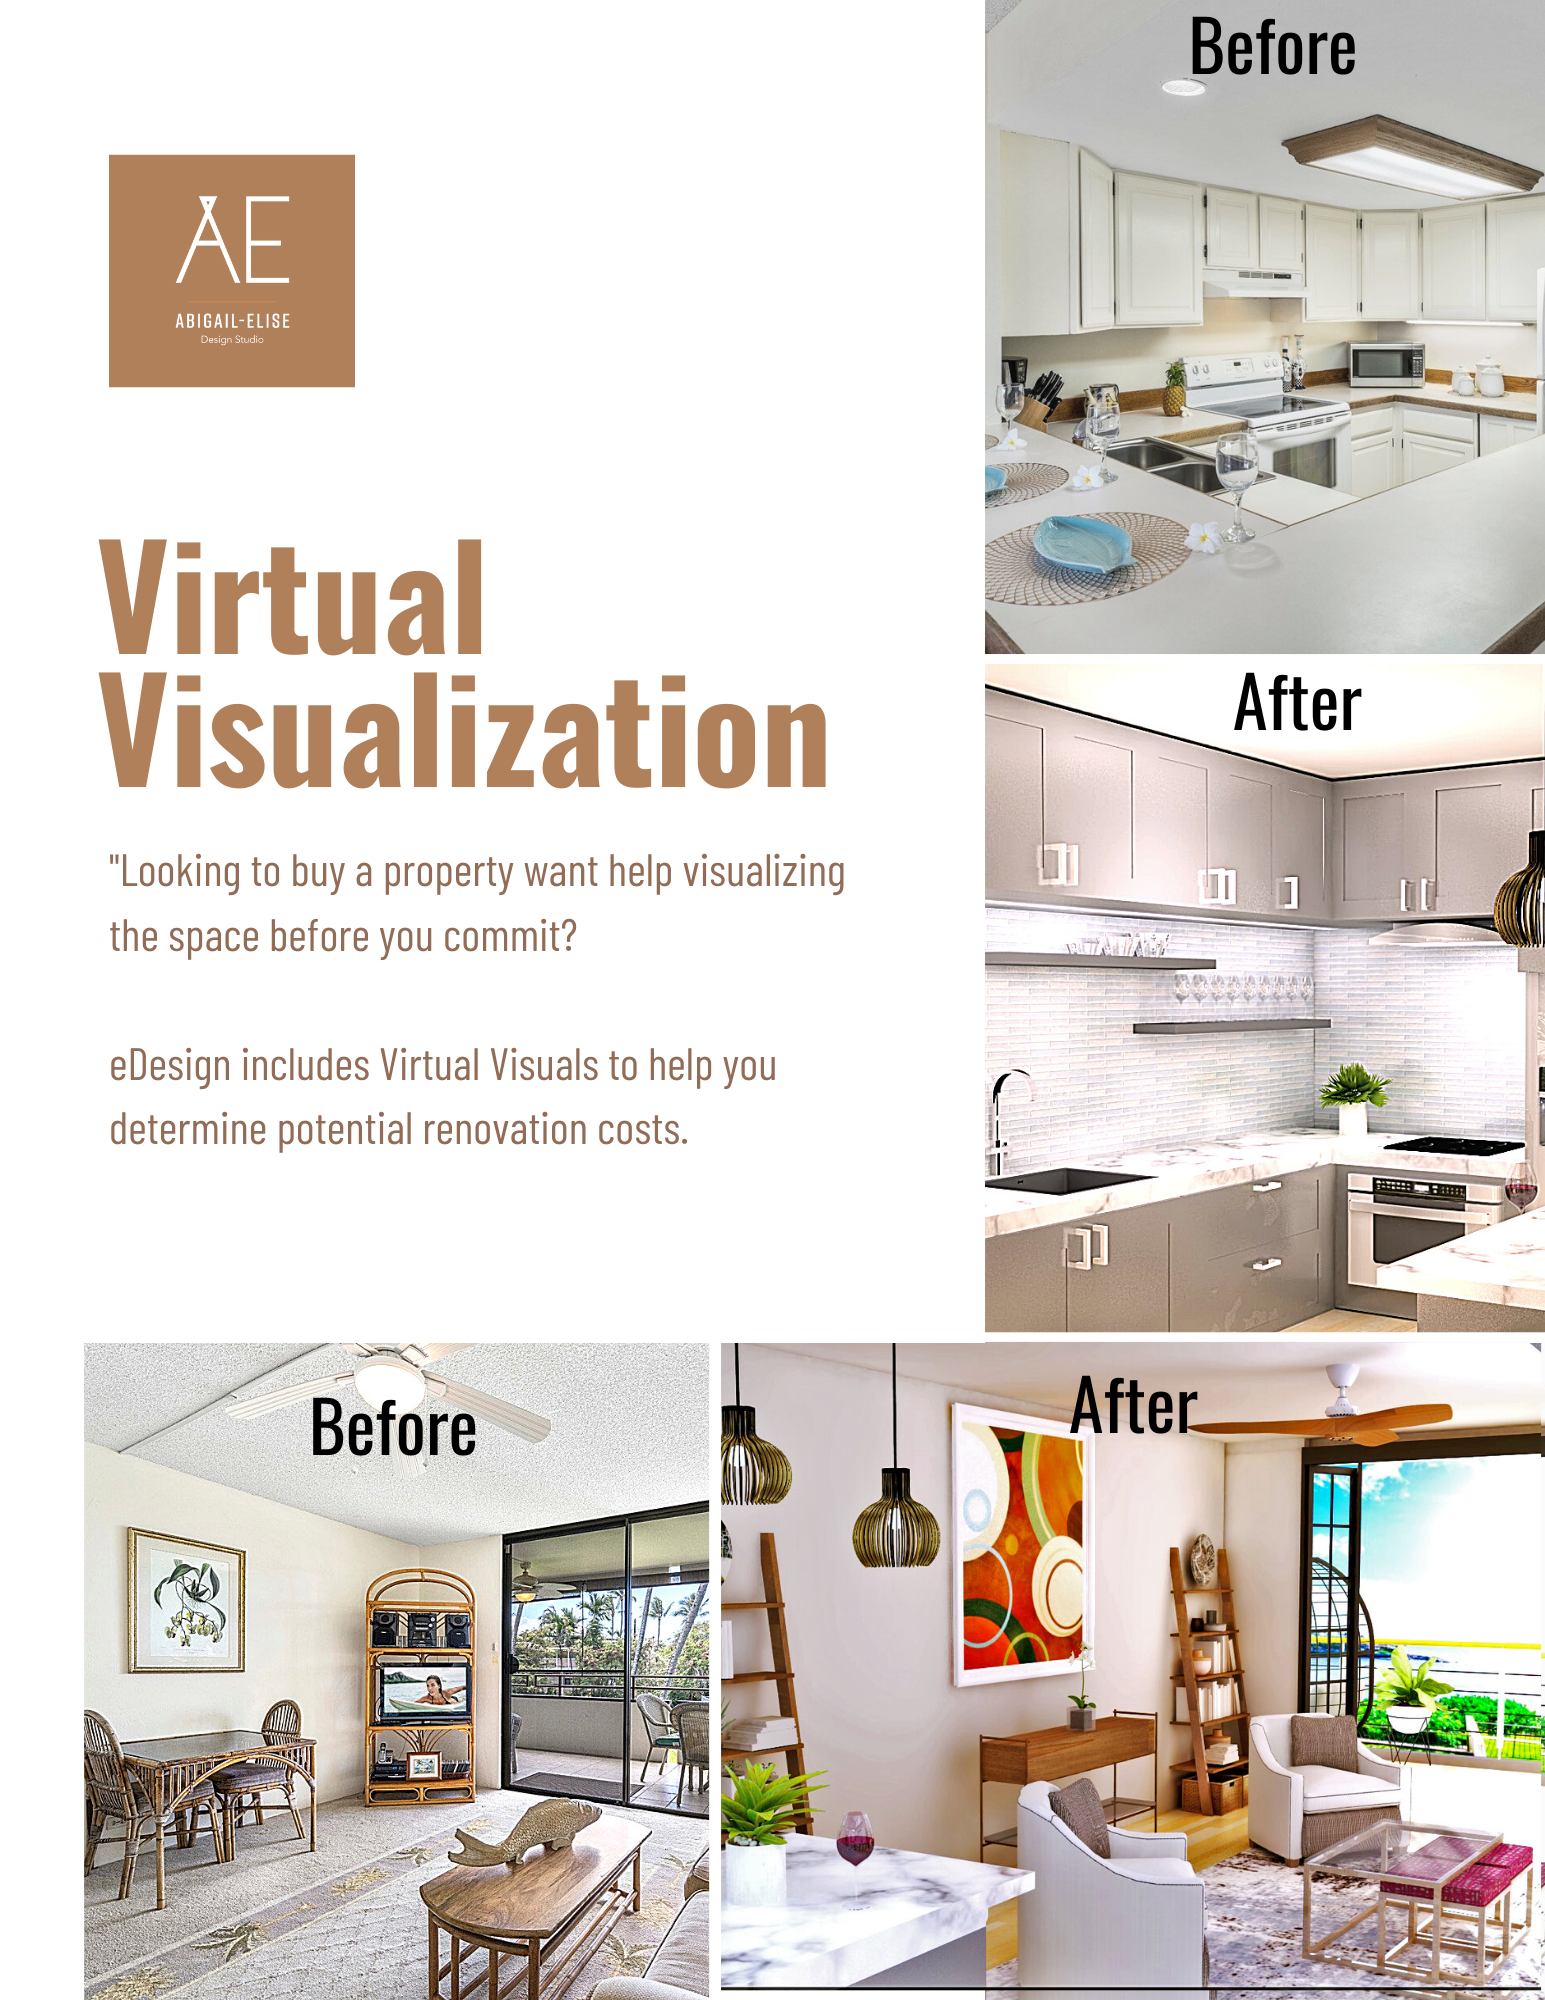 Virtual Visualization With Edesign Edesign Online Interior Design Services Online Interior Design